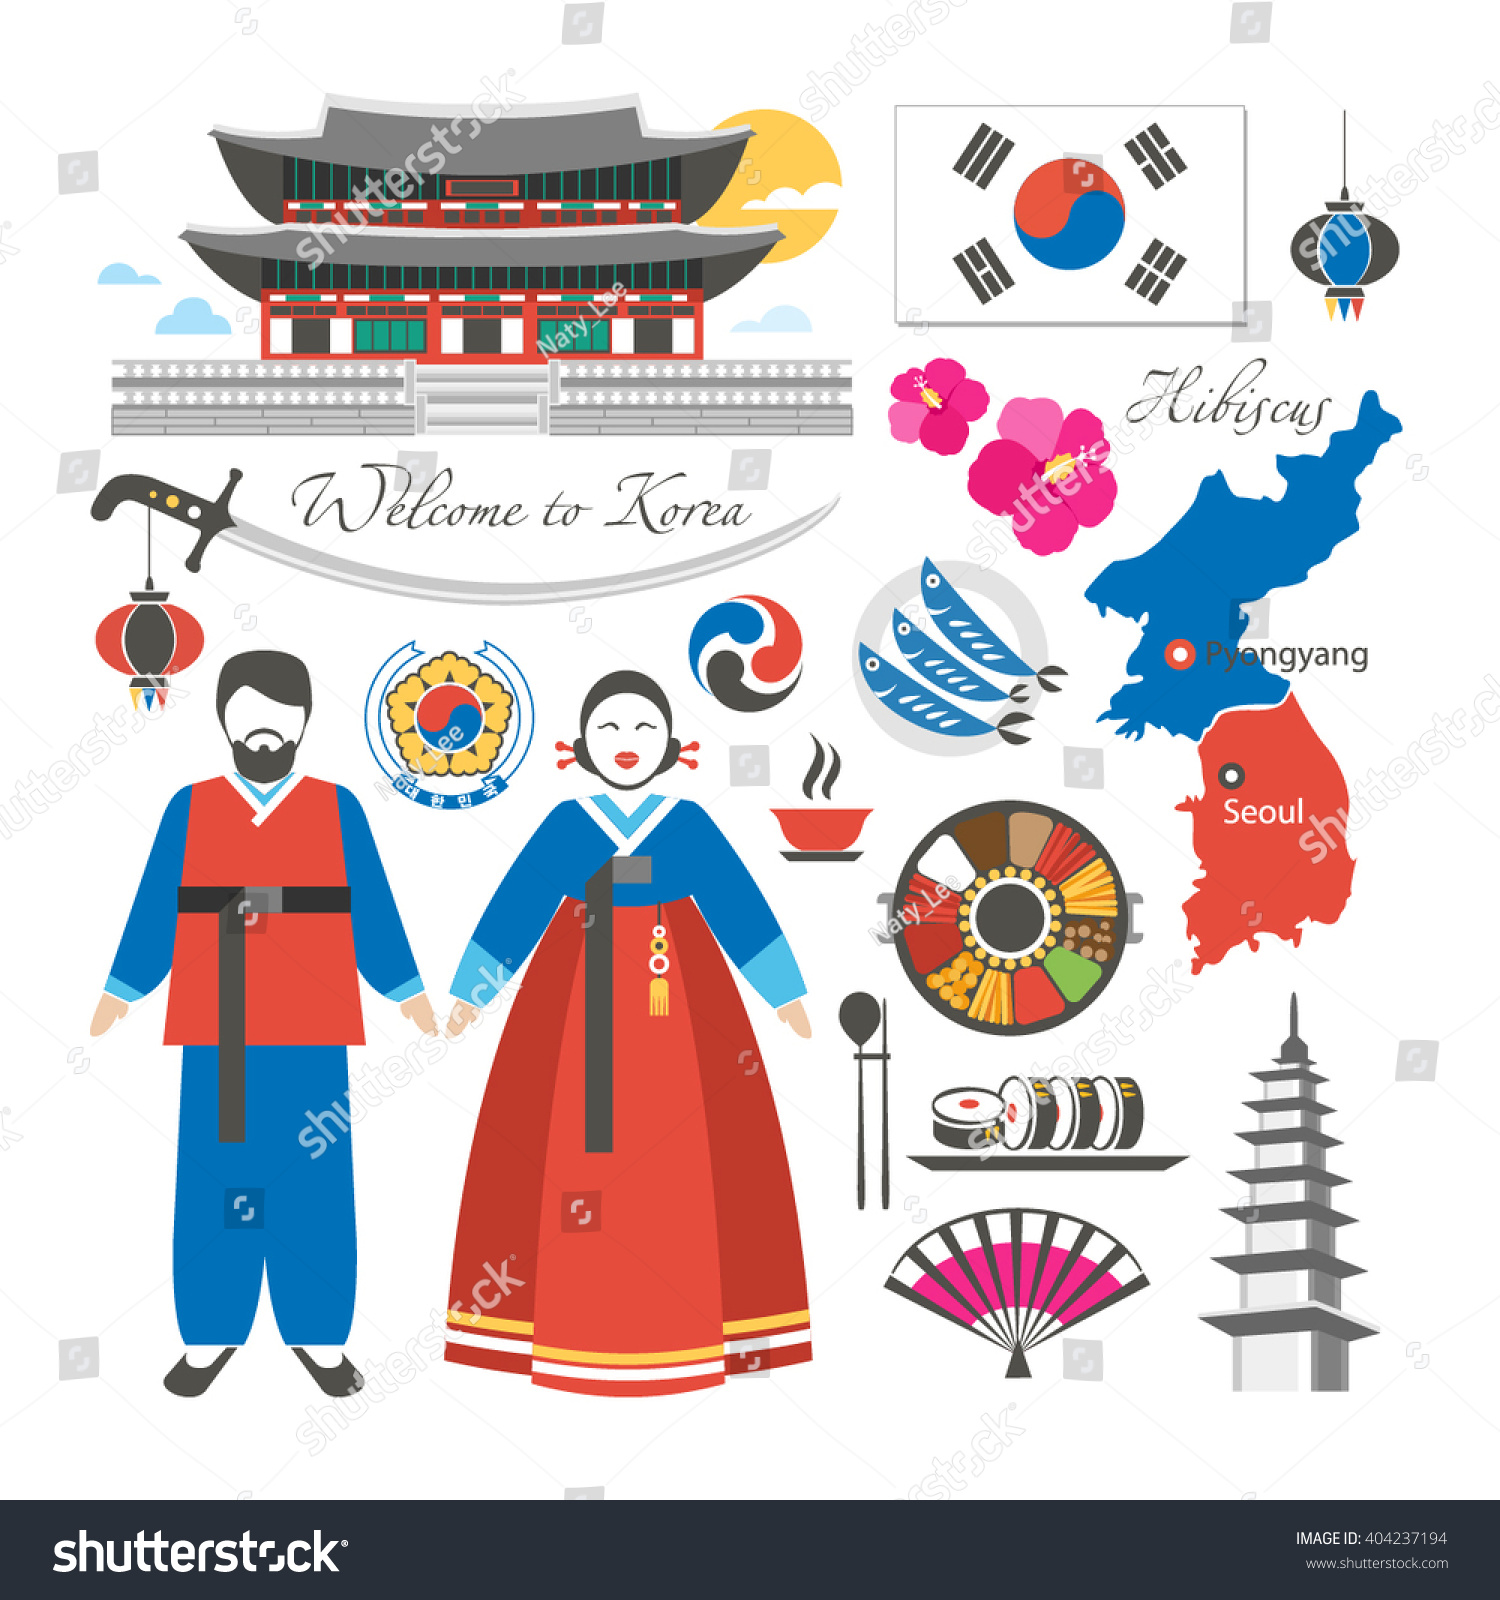 Welcome korea traditional symbols collection stock vector welcome to korea traditional symbols collection biocorpaavc Image collections